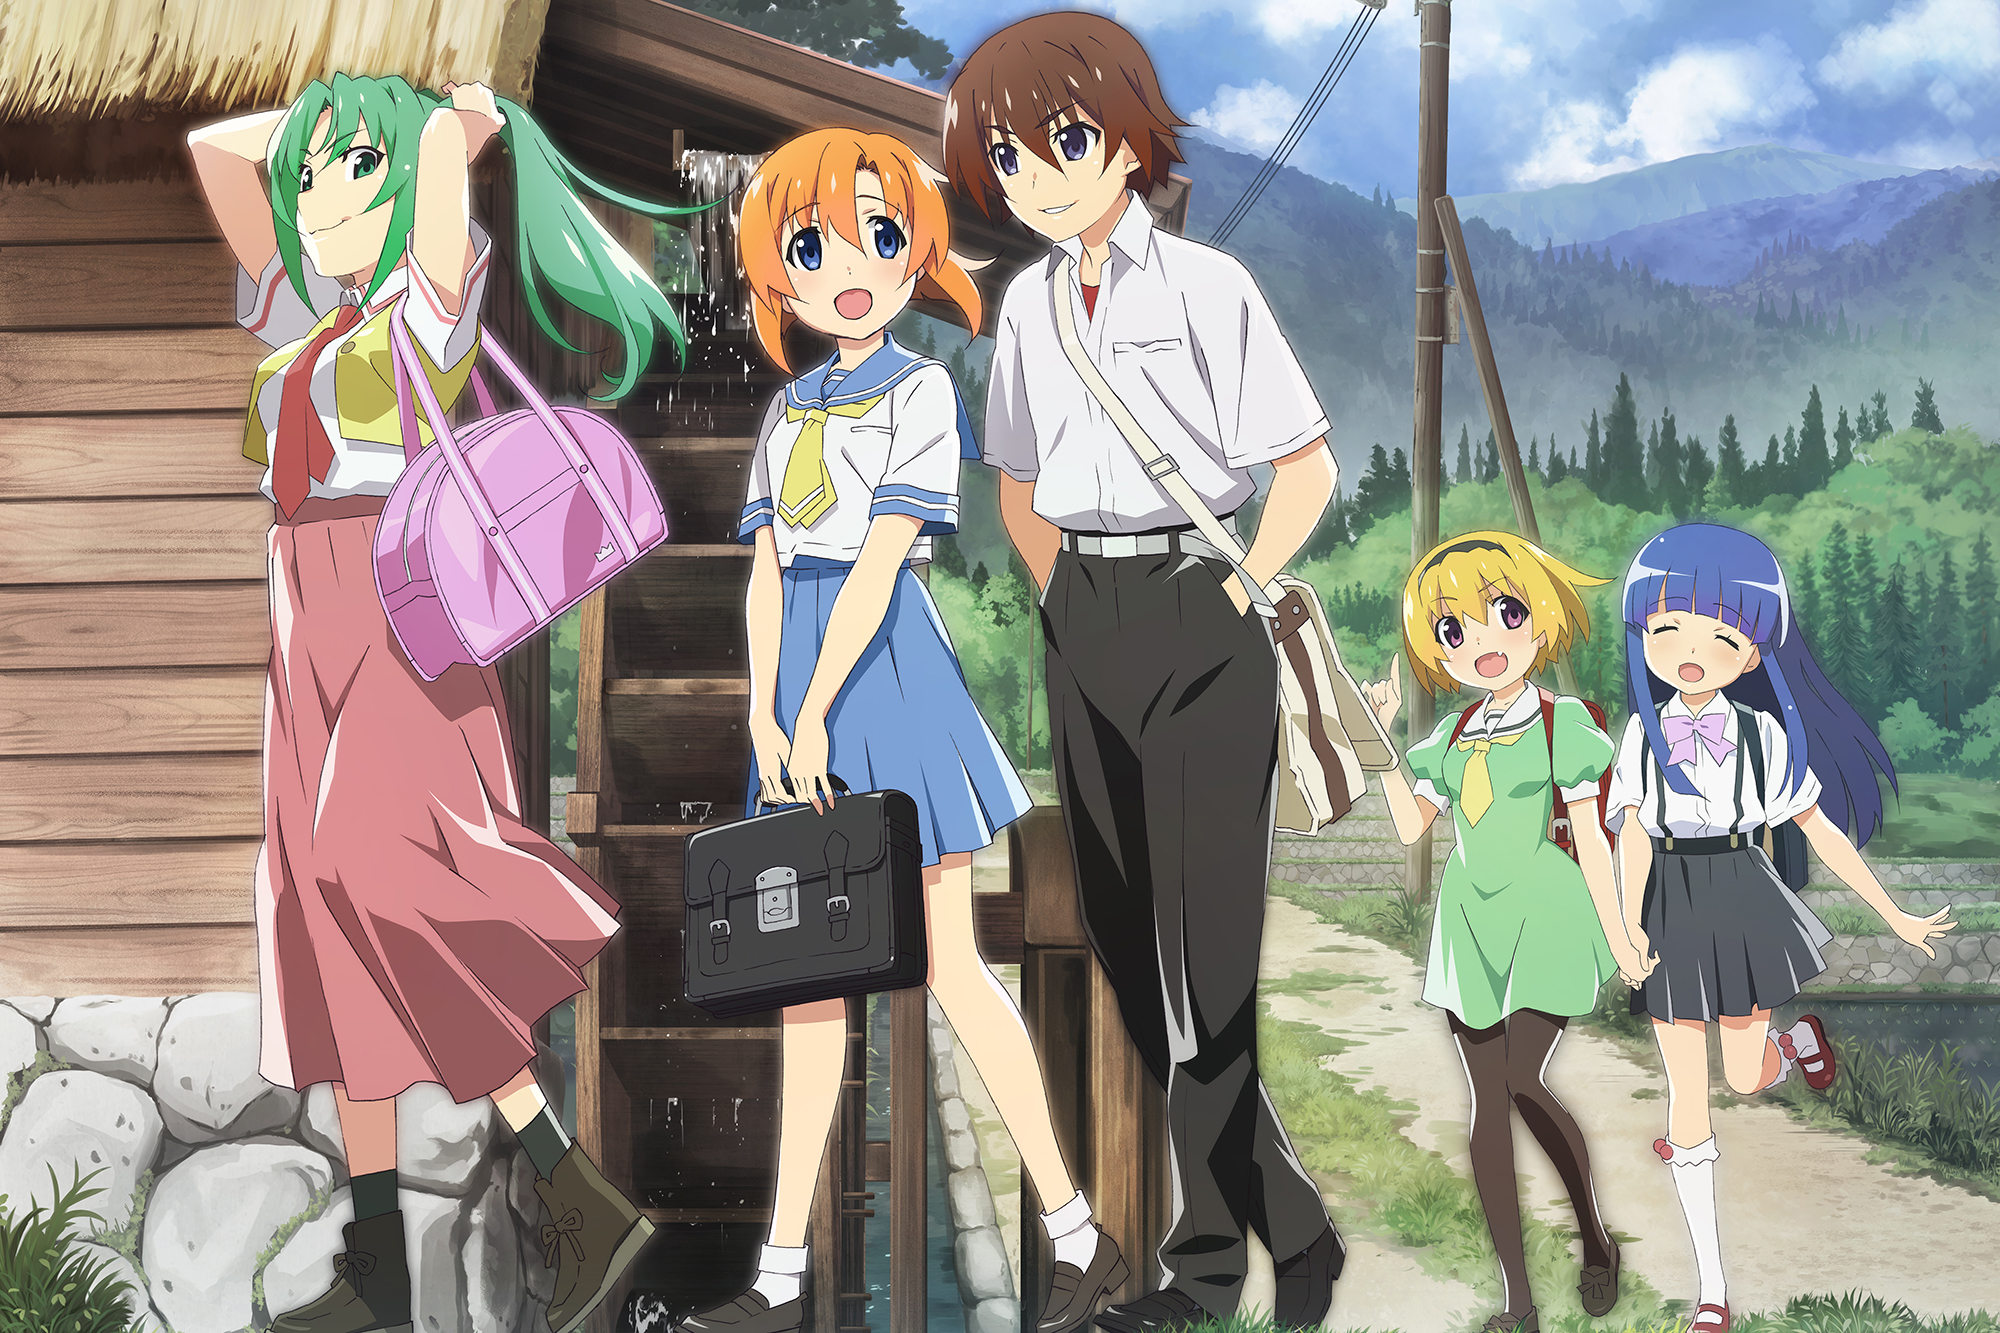 Our Favorite Anime Premieres of Fall 2020 So Far - Higurashi: When They Cry